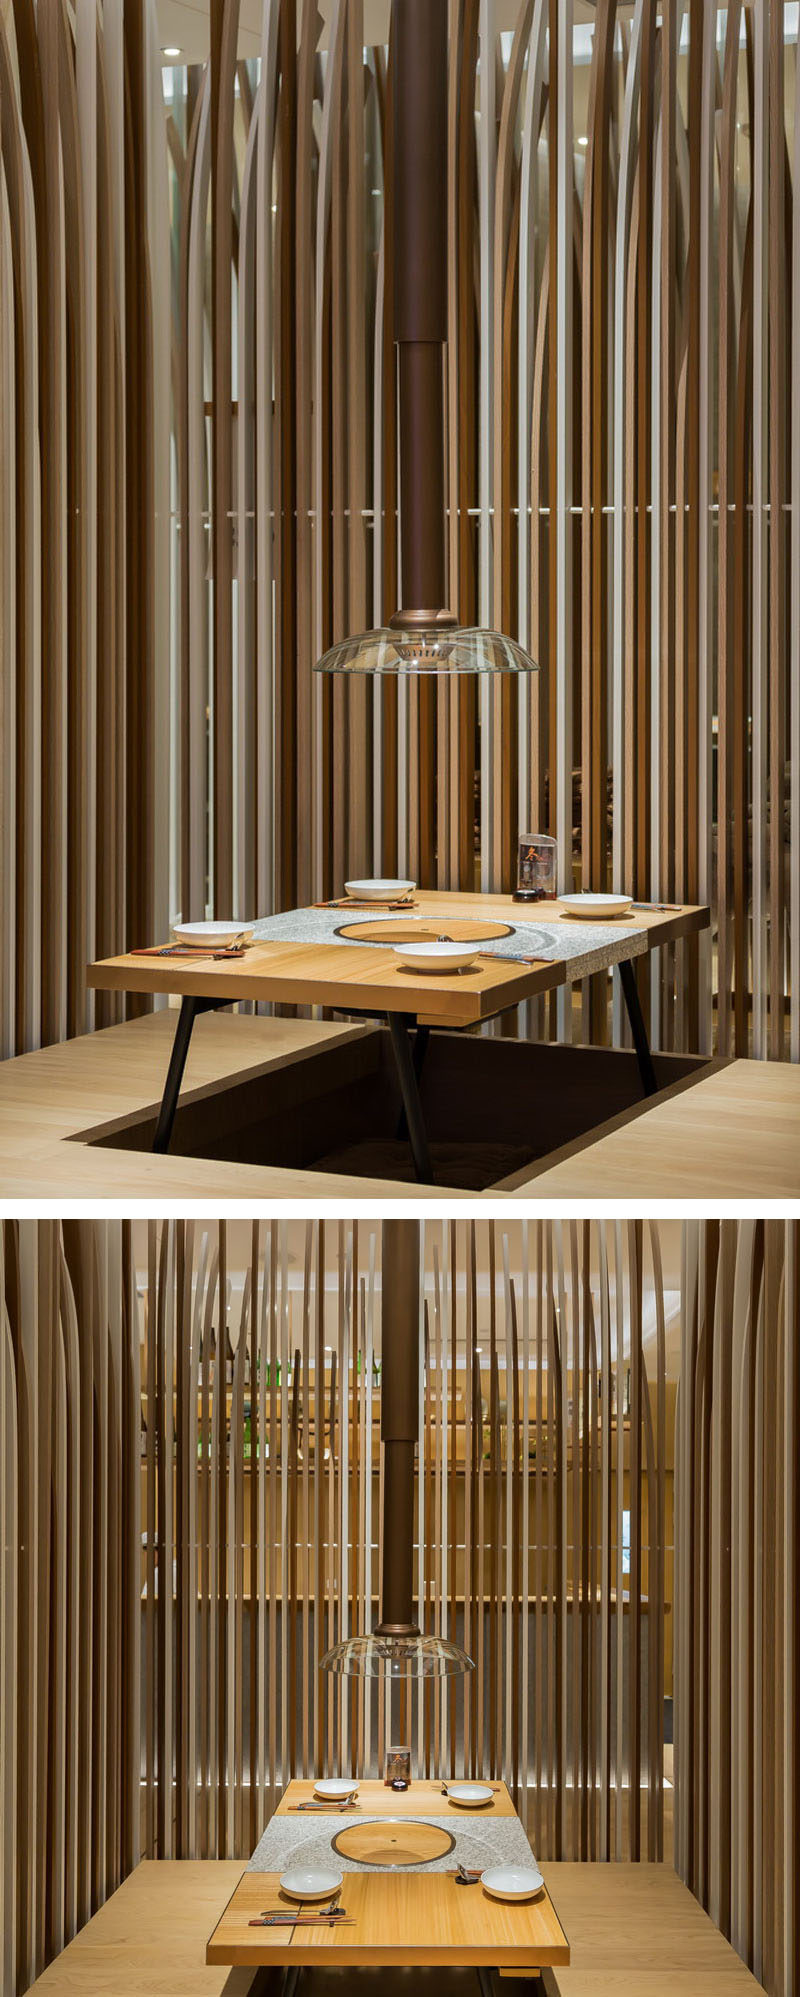 Restaurant Interior Design Ideas - In this hotpot restaurant, some of the tables allow you to sit slightly raised up from the floor with your legs tucked in underneath the tatami style table.